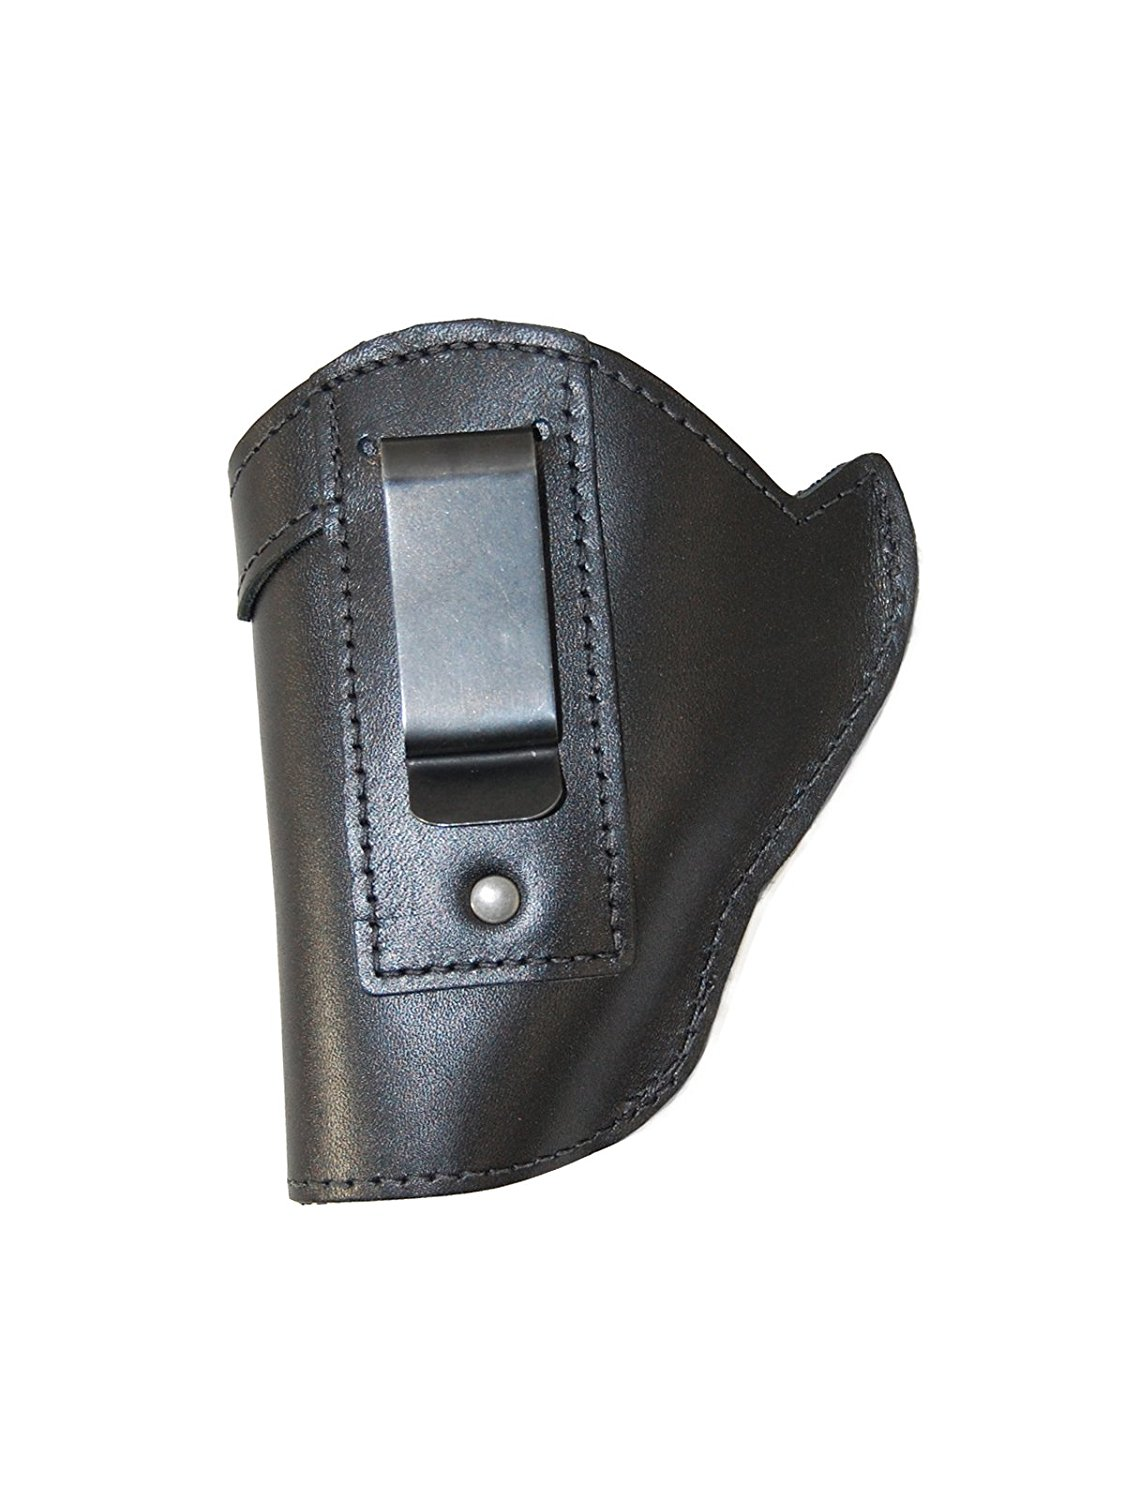 Inside the Waistband Holster IWB Ruger LCR Rossi Bodyguard 38 Special Revolver